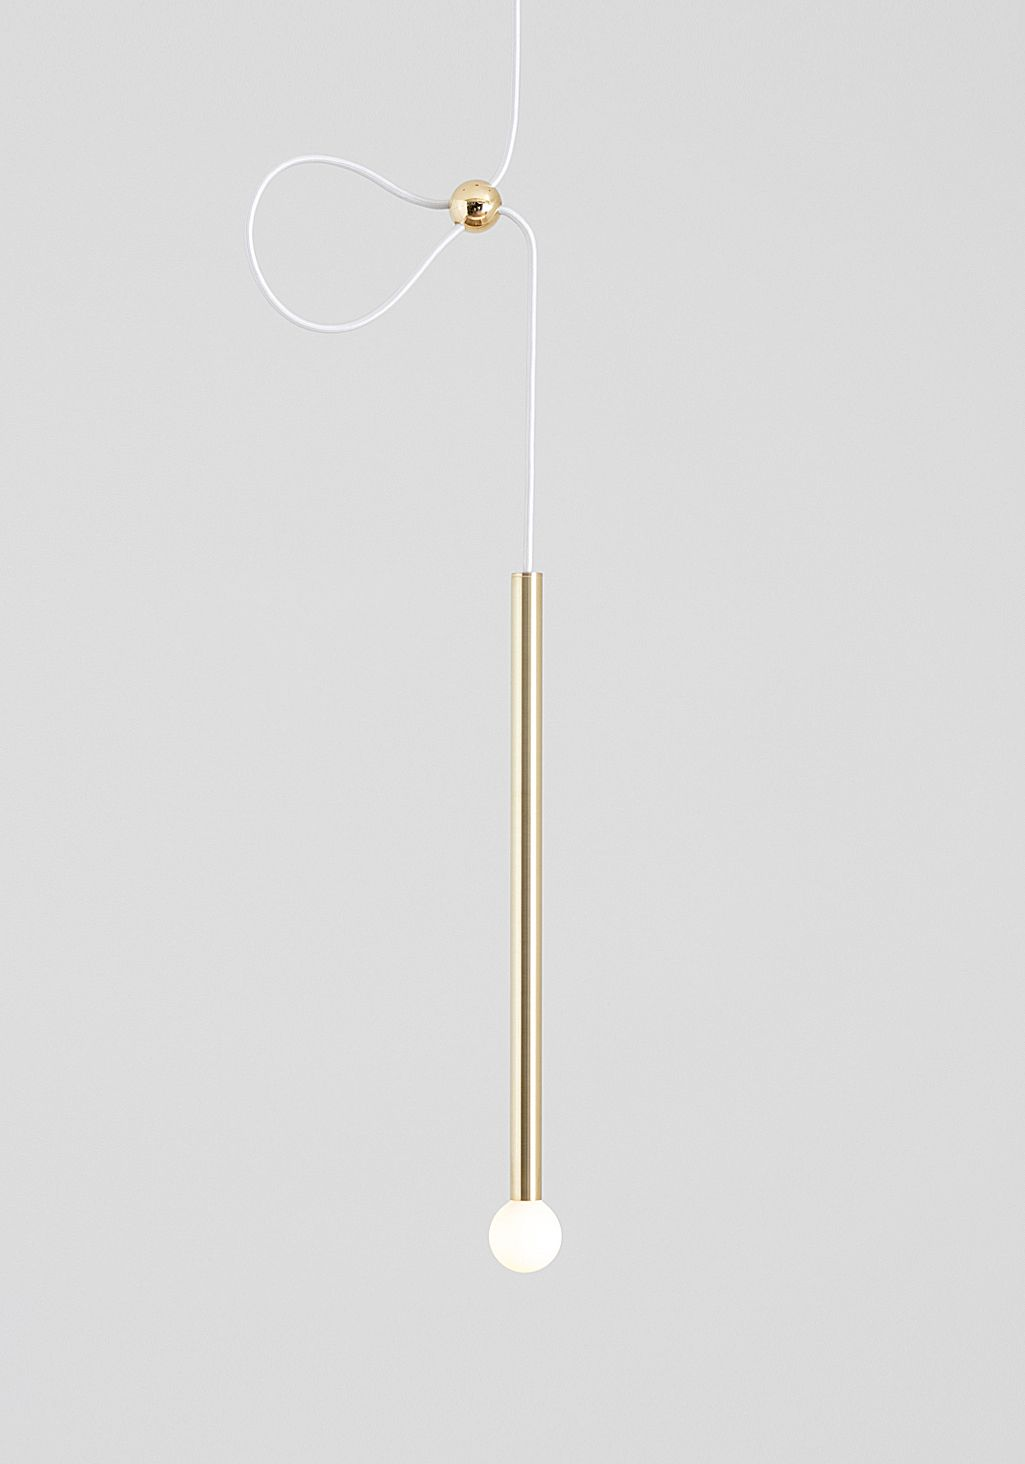 Discover a globally sourced collection of cutting edge lighting ...